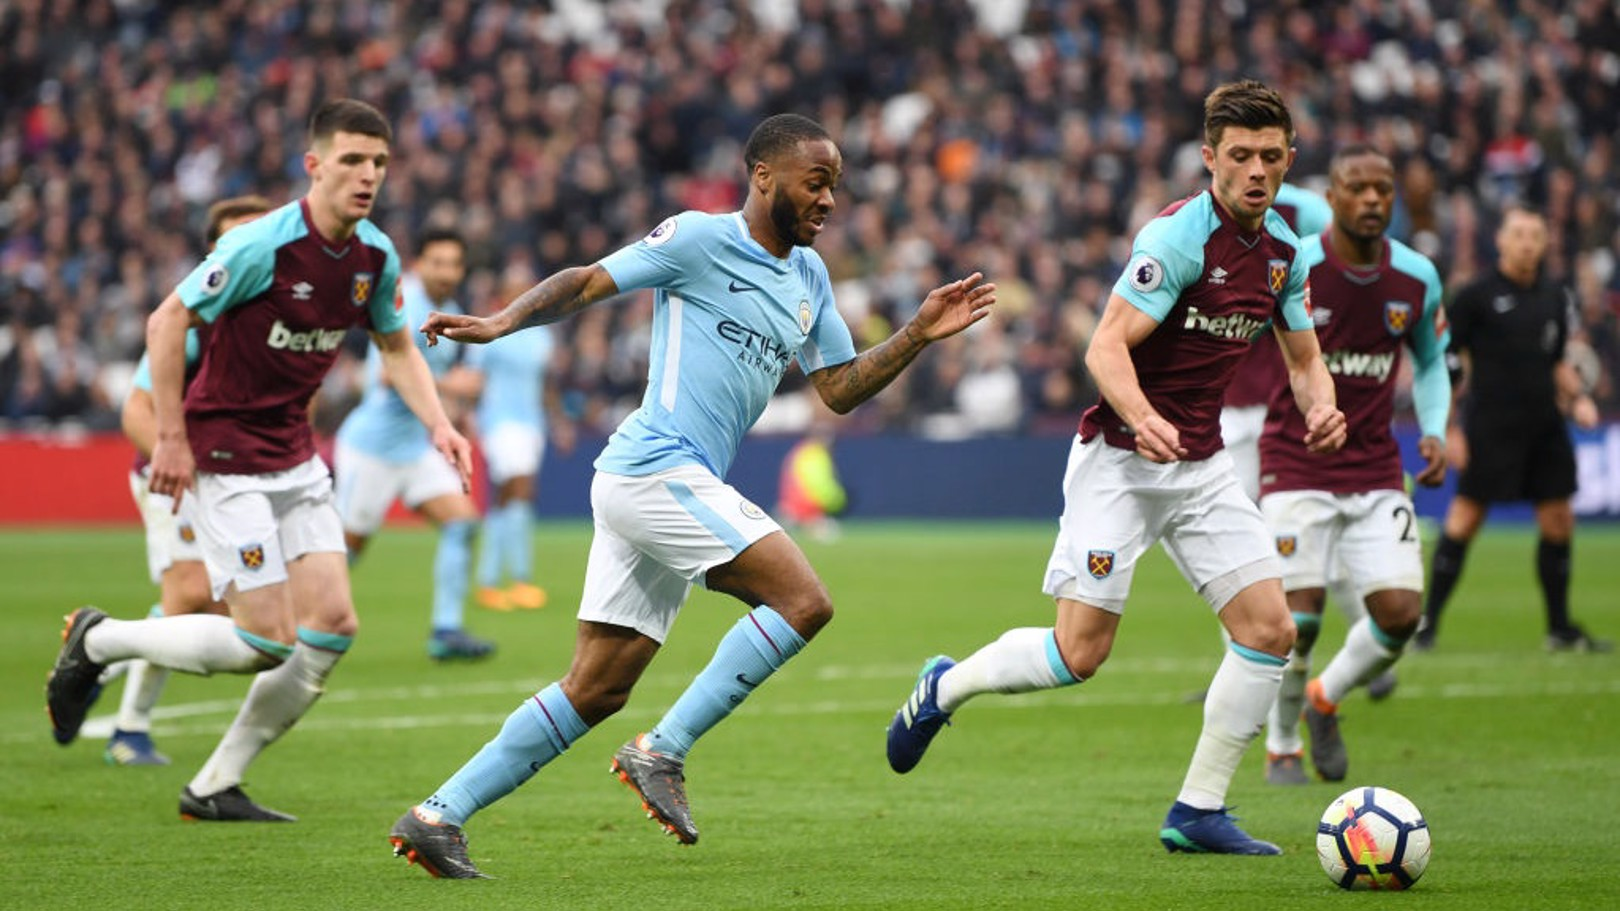 STERLING PLAY: Raheem has improved drastically this season